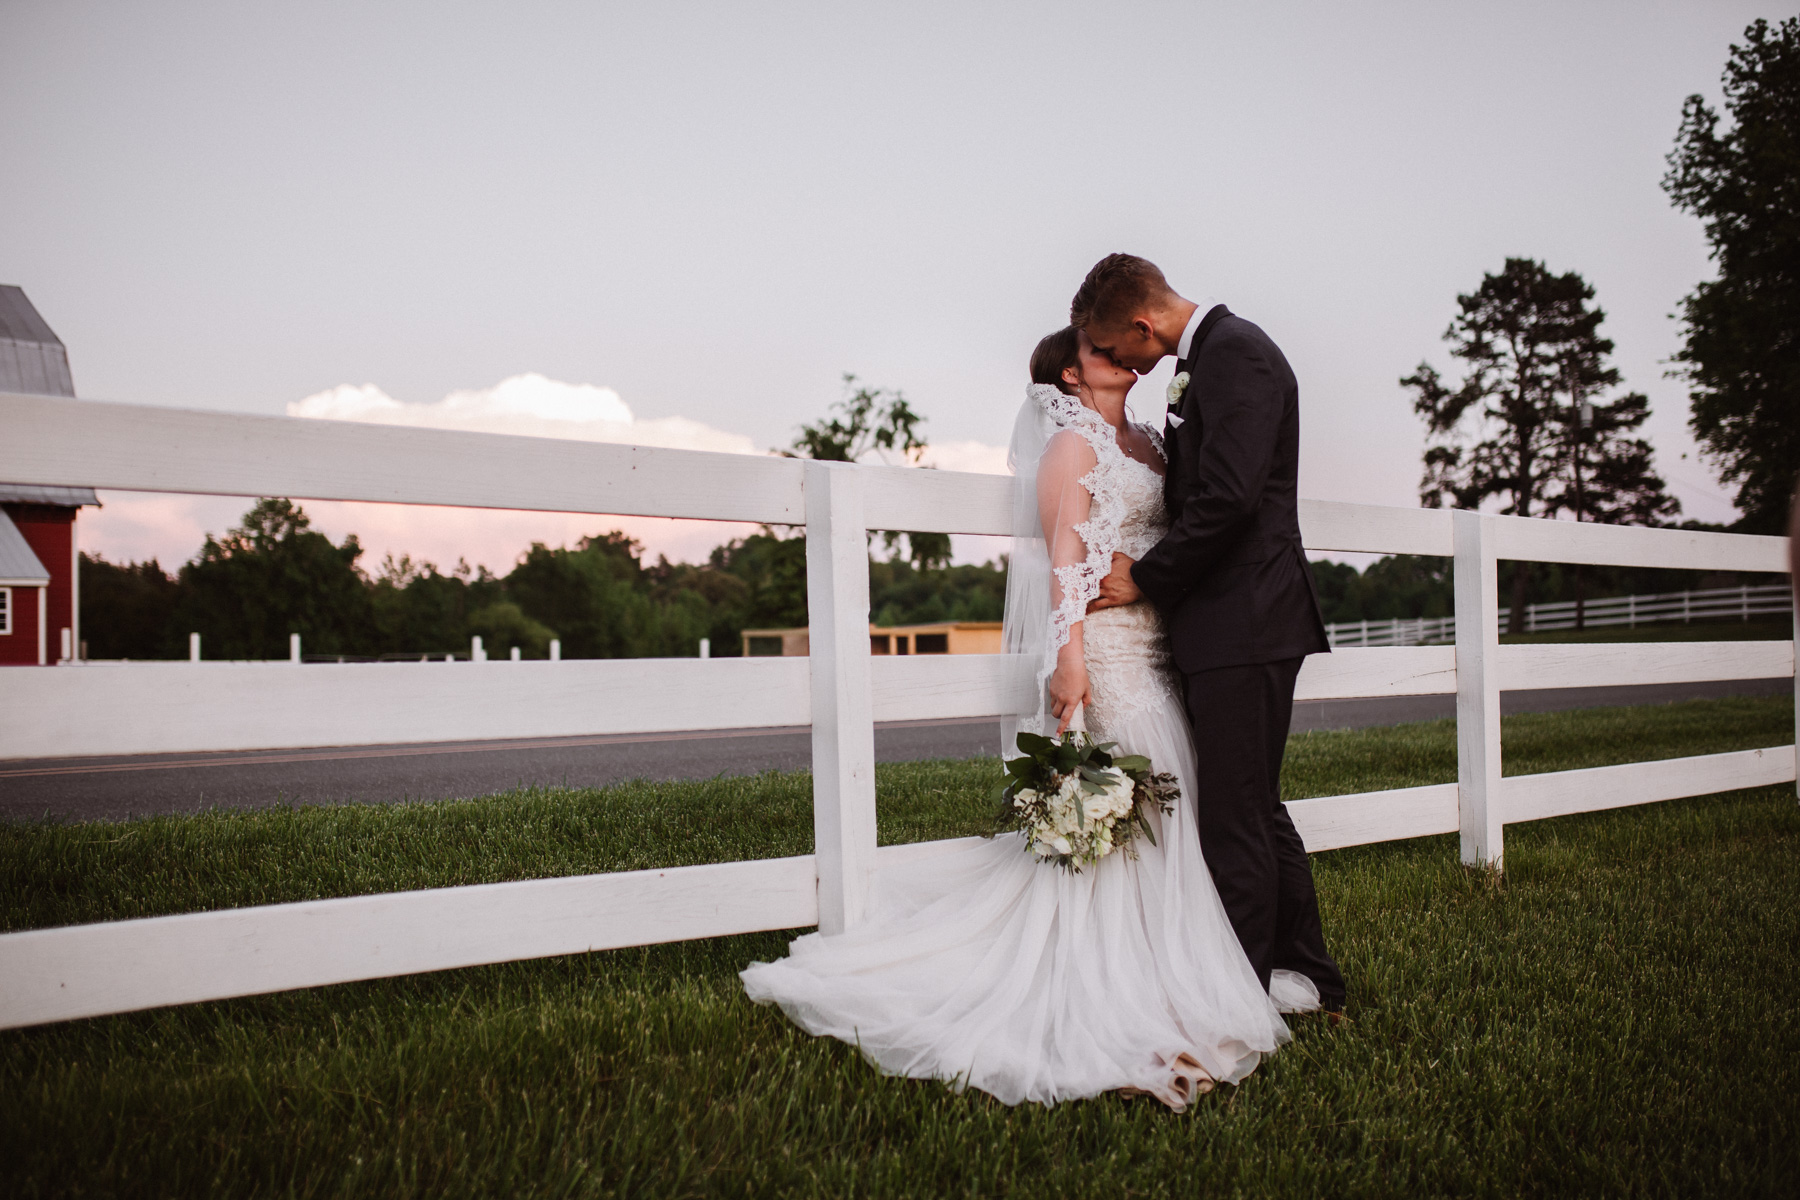 Bride and Groom Portraits at Millikan Farms | Kayli LaFon Photography